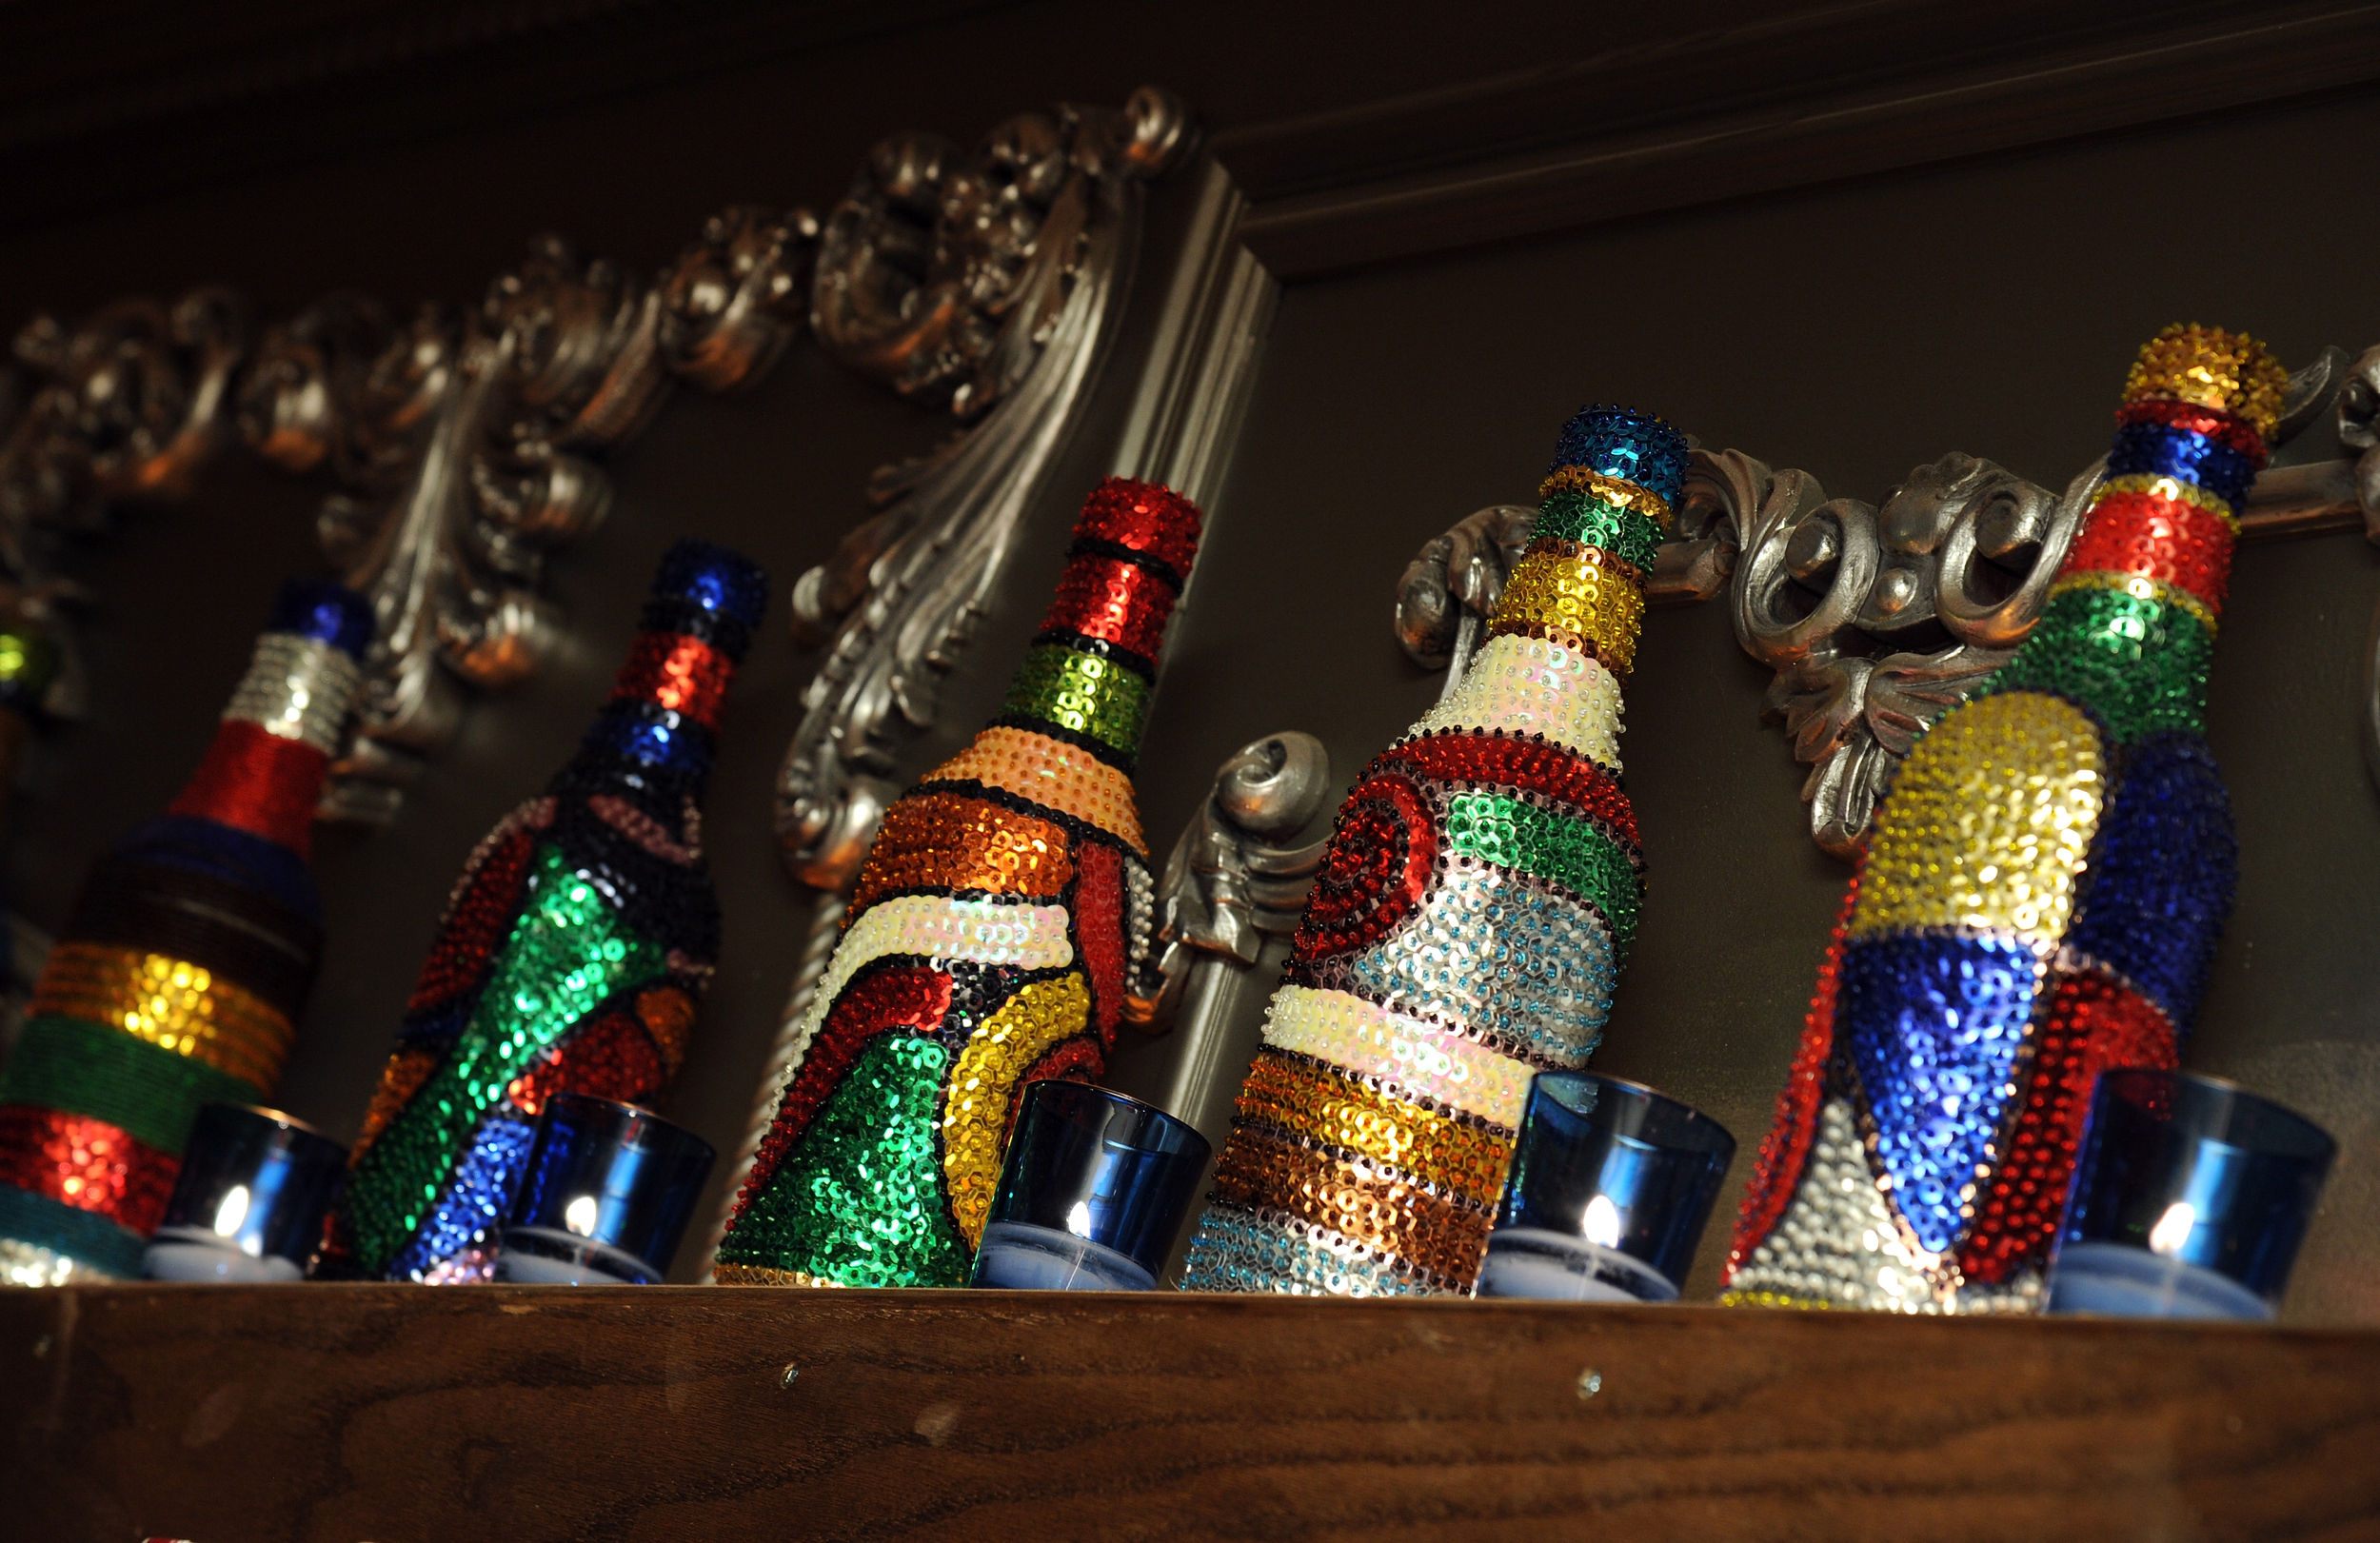 HAND-DECORATED BOTTLES FROM HAITI